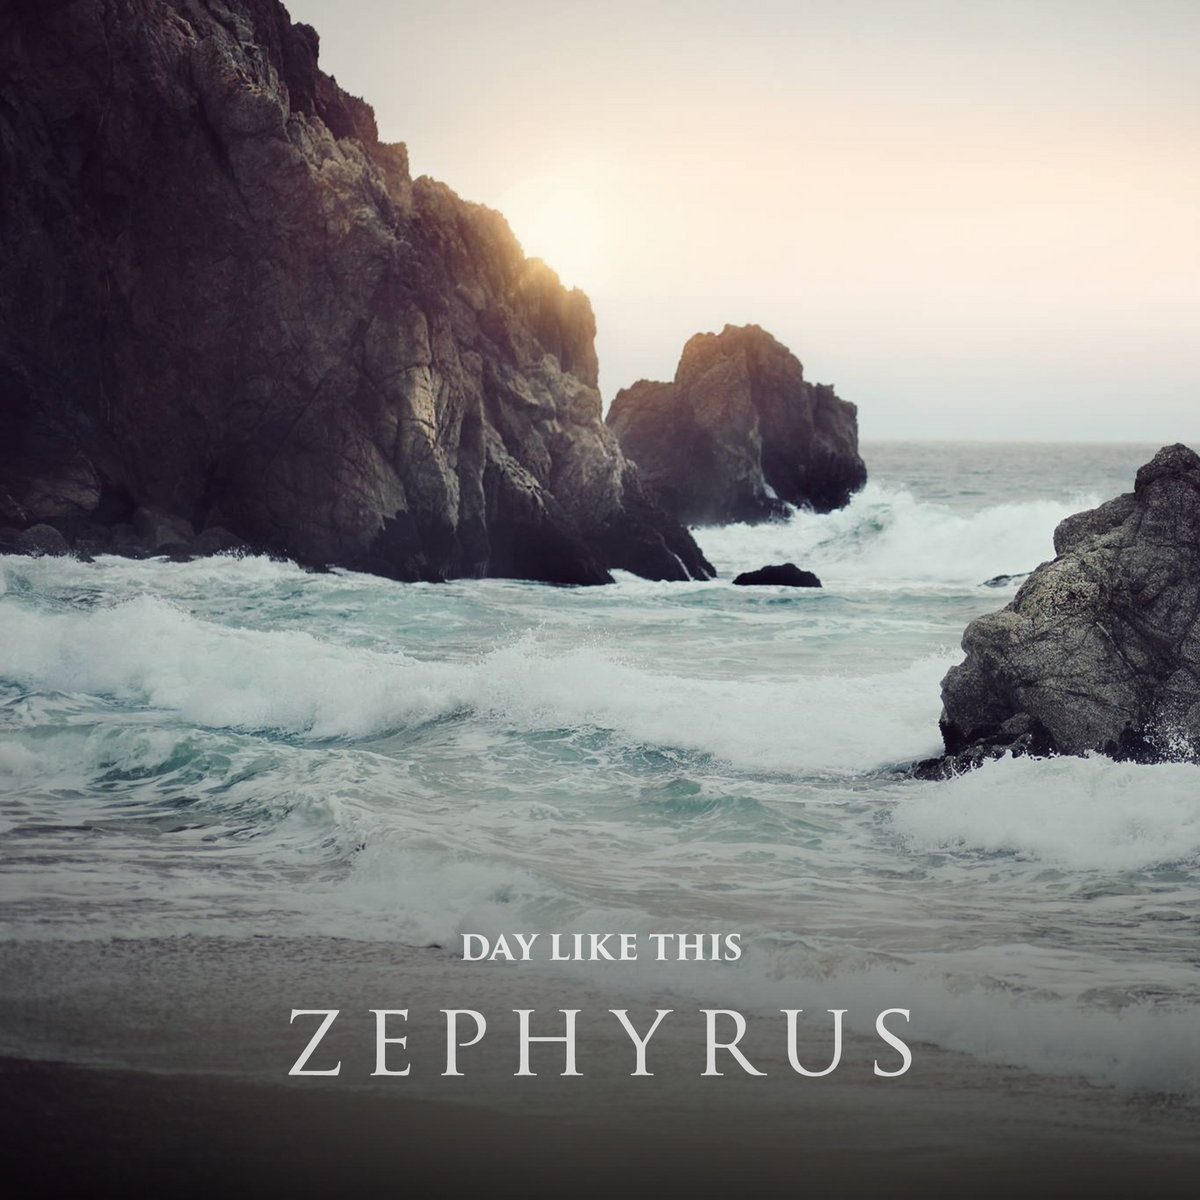 Zephyrus by Day Like This